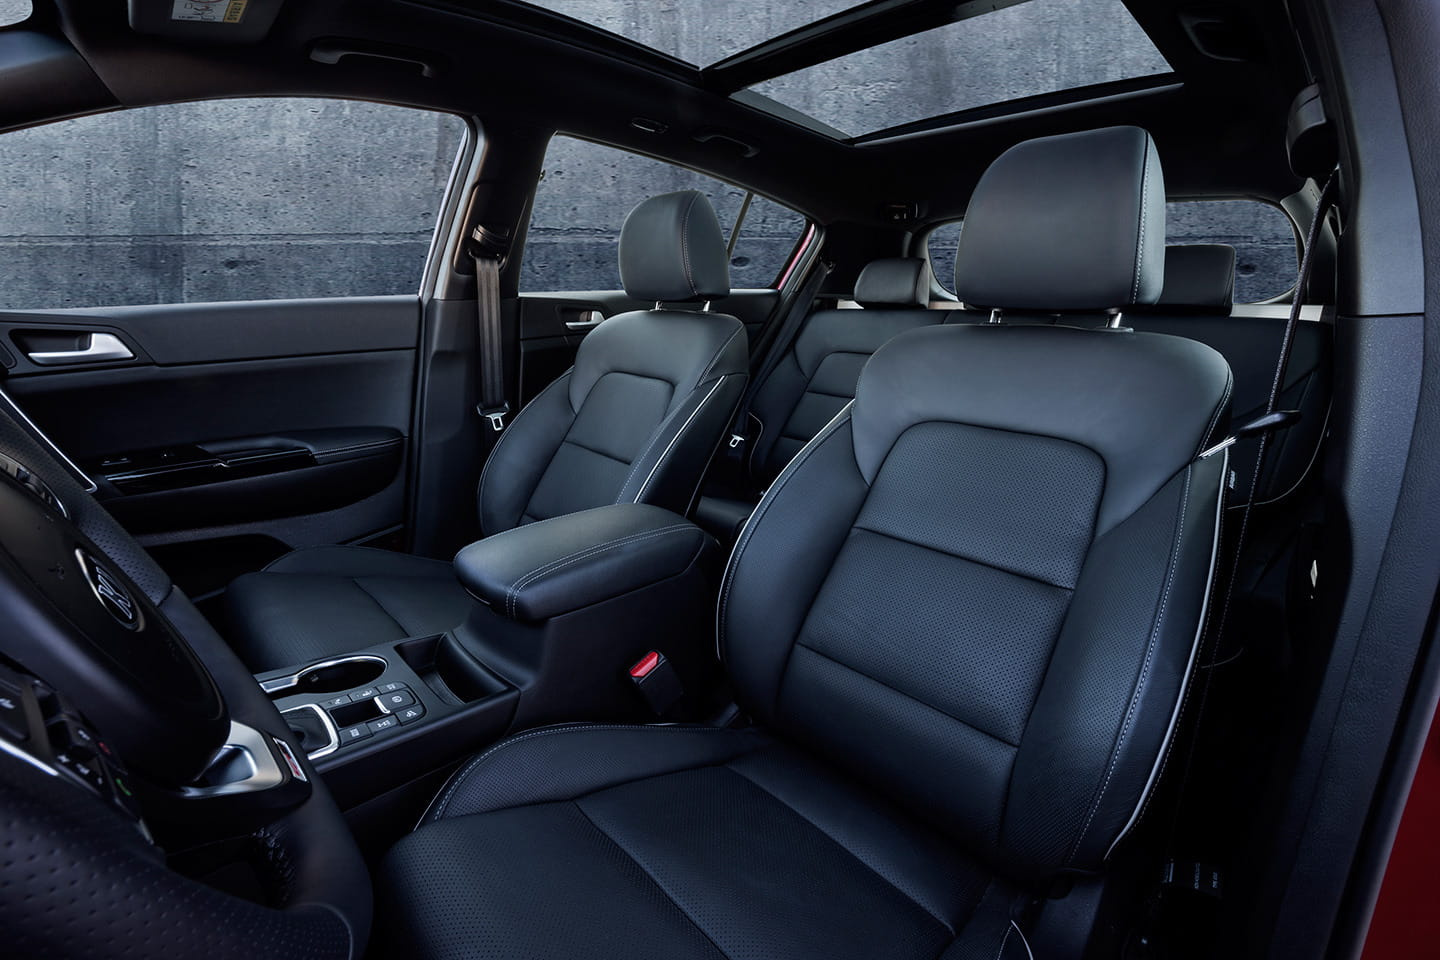 kia sportage 2016 as es su interior m s premium y tecnol gico diariomotor. Black Bedroom Furniture Sets. Home Design Ideas